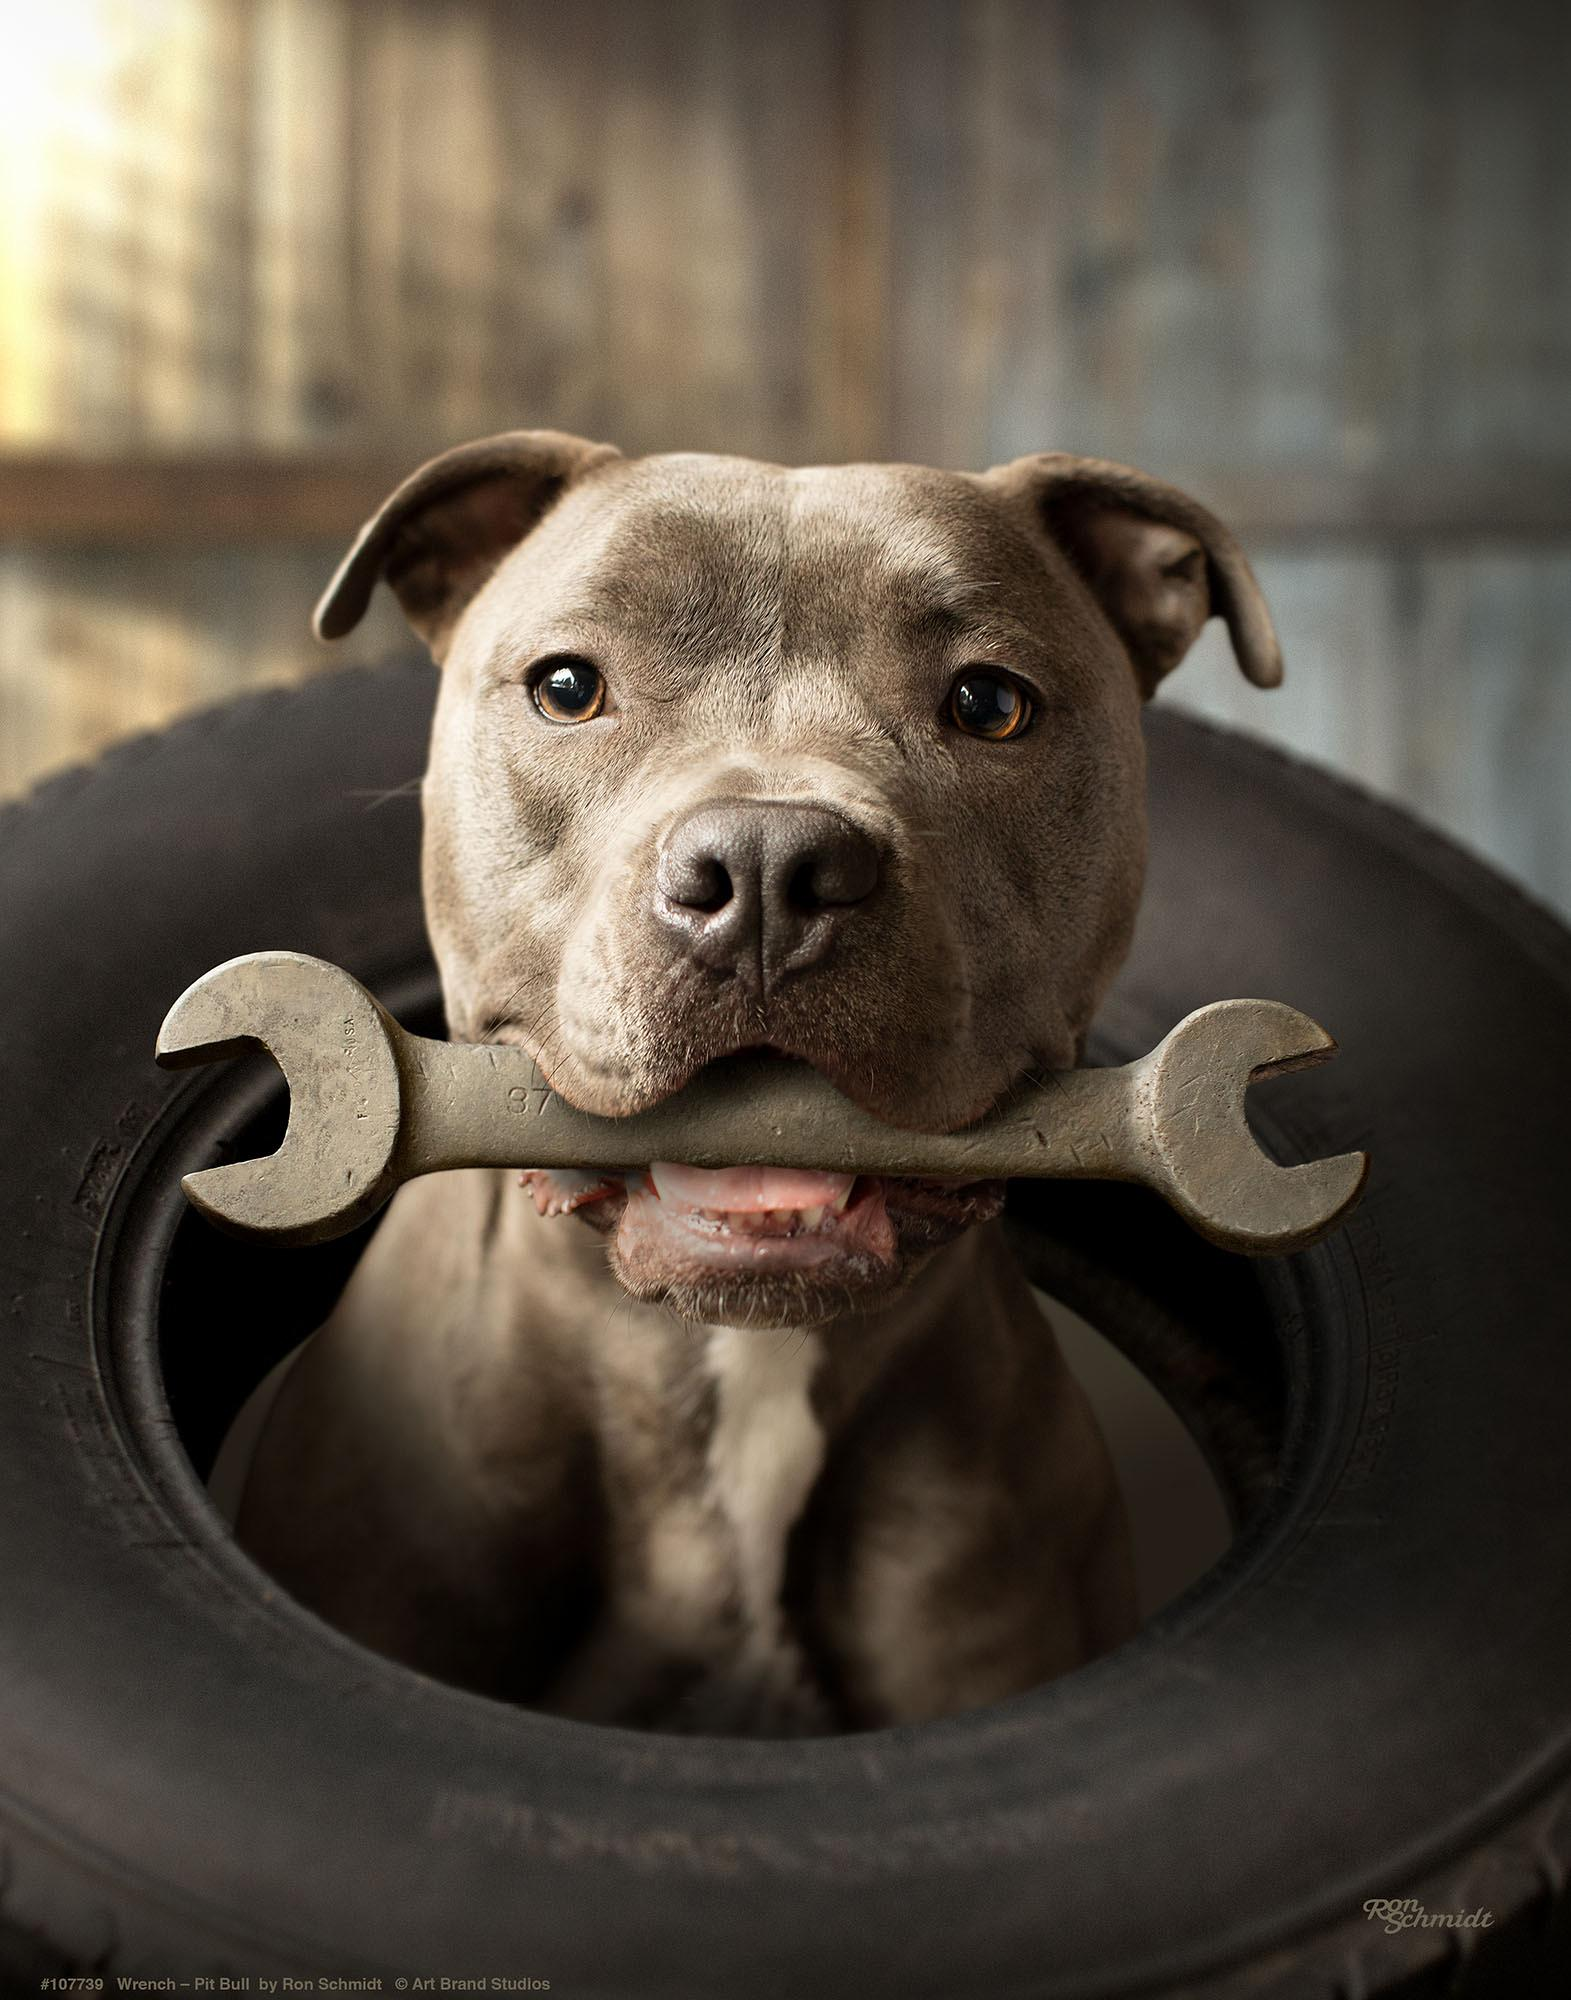 Wrench-Pitbull Terrier Art Collection